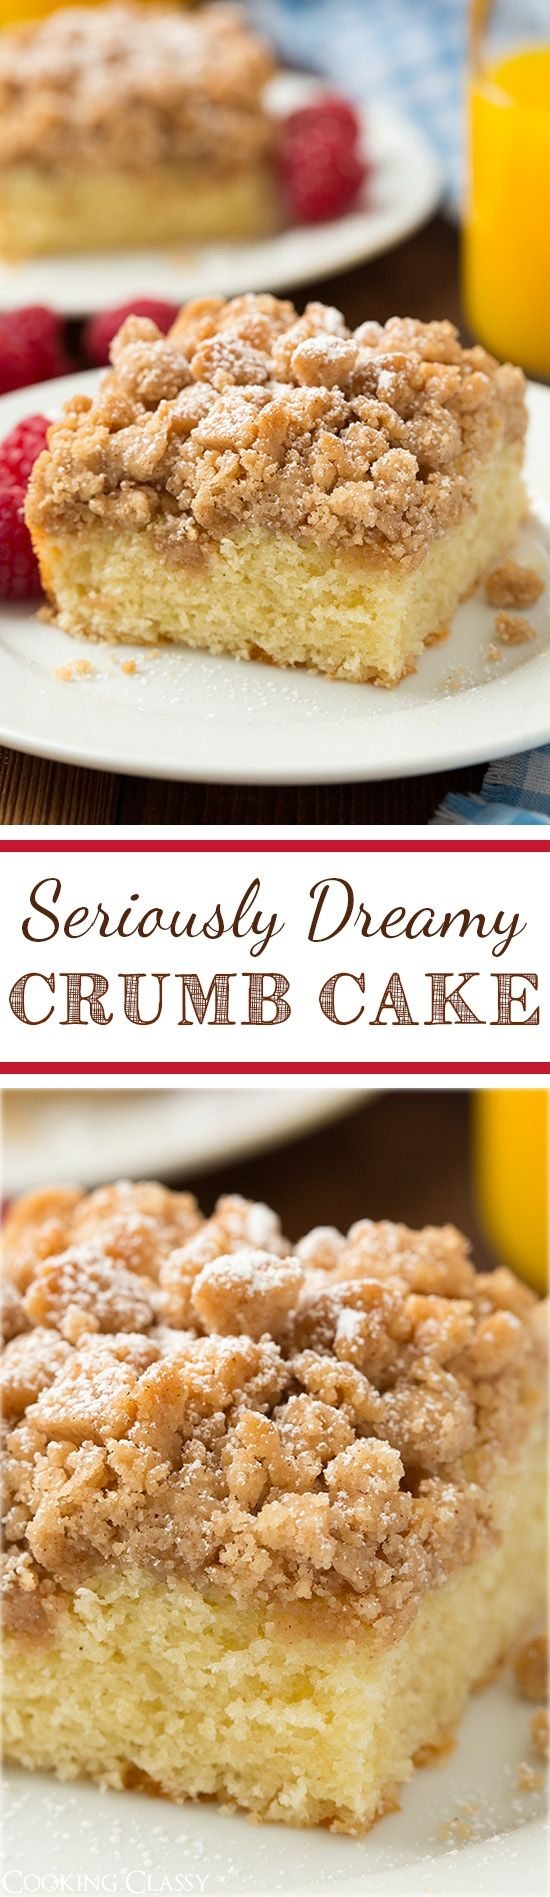 Crumb Cake - this is my FAVORITE breakfast cake! It has tons of cinnamony crumbs and the cake is so soft and moist. #cupcake #sweet